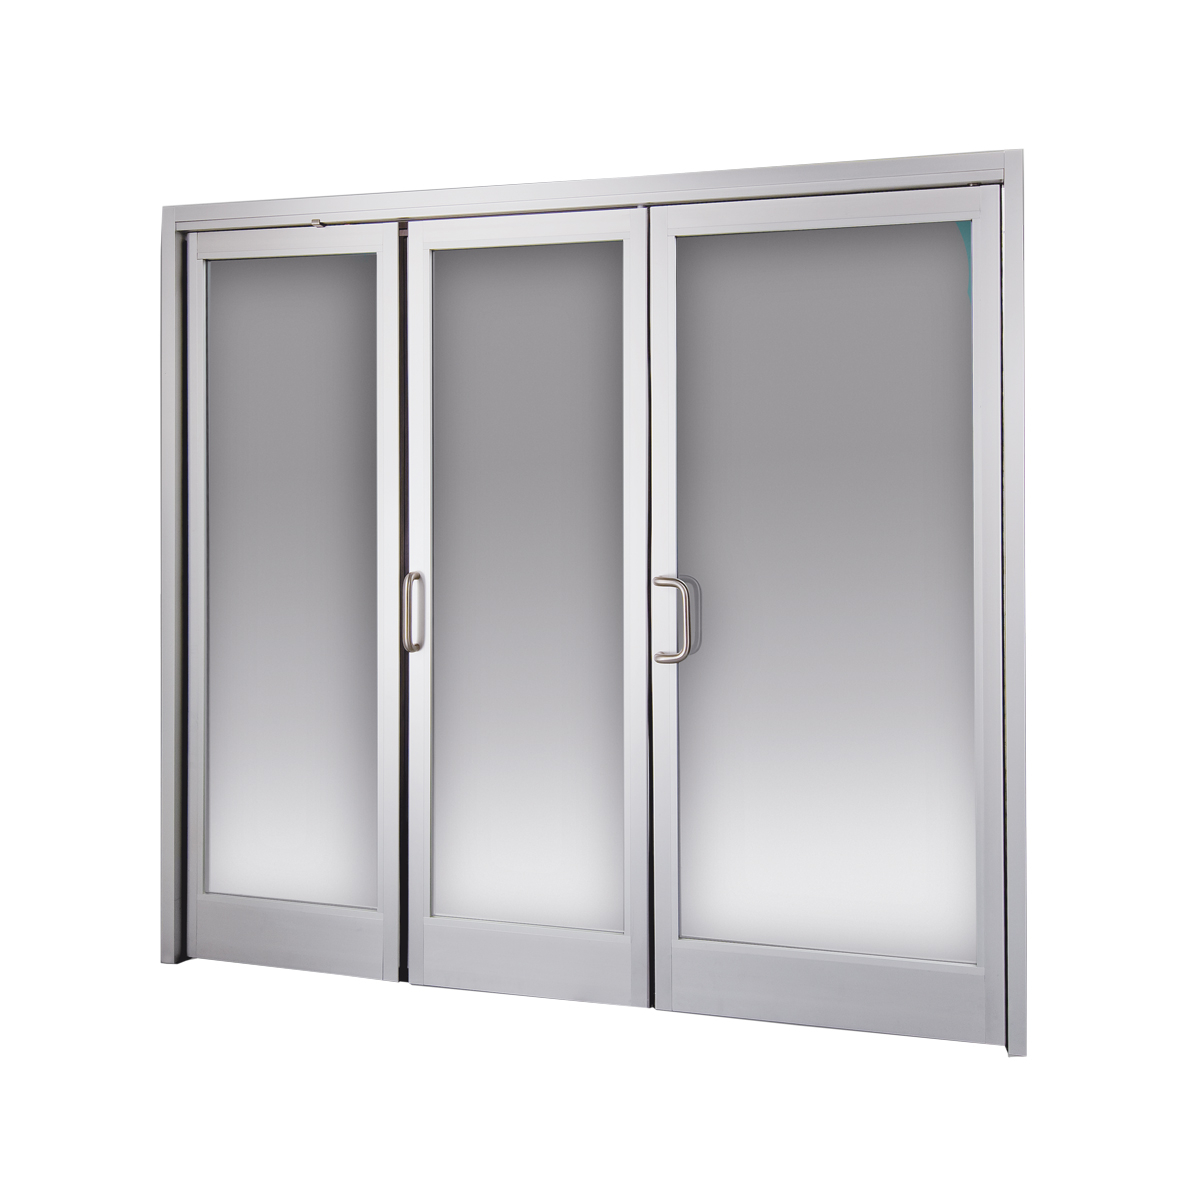 dorma icu 1200 manual swing door with bi fold expanded access